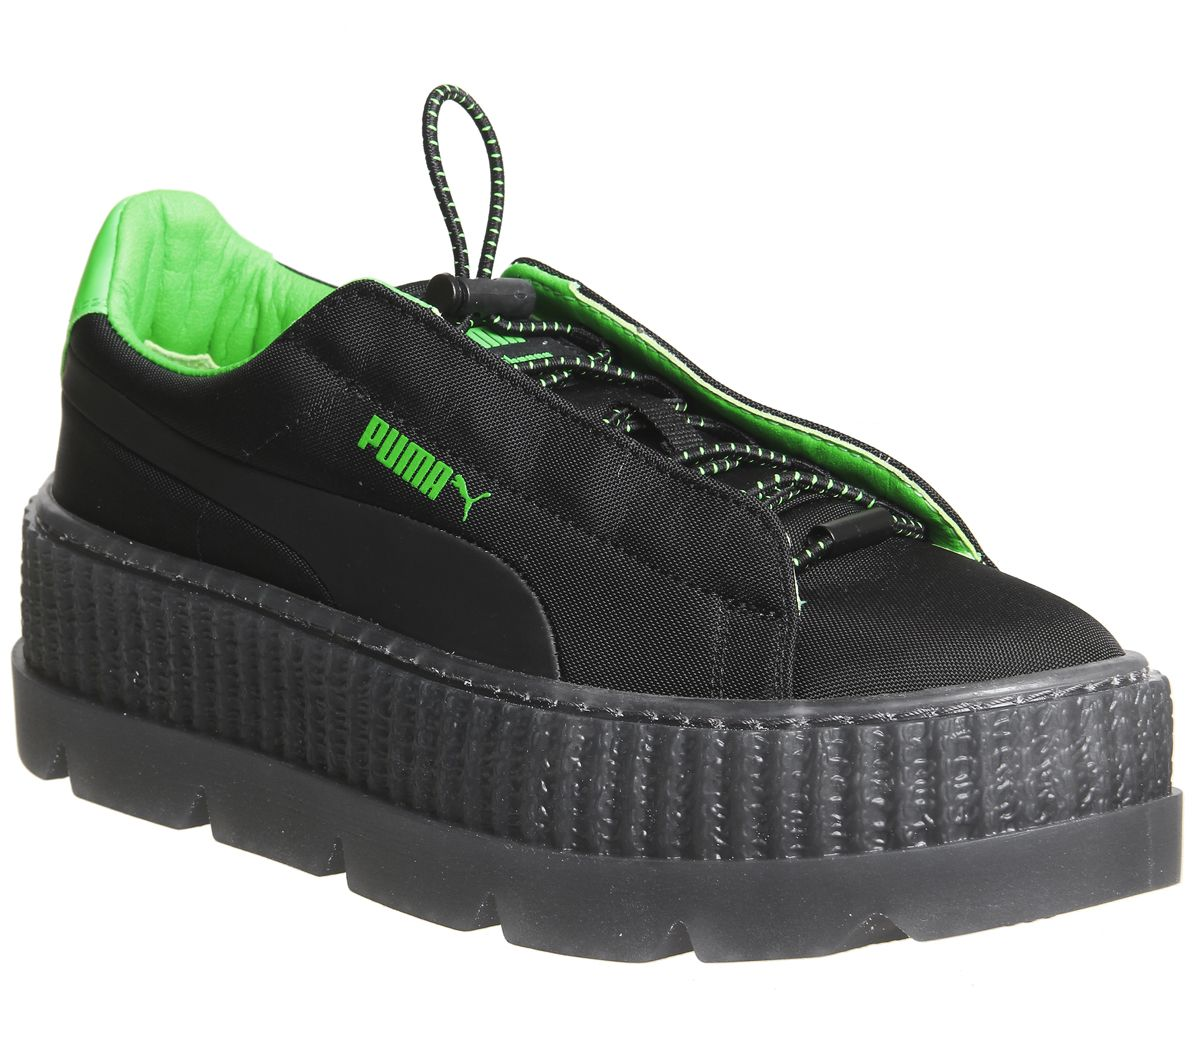 buy online 55c5a f2b3a Fenty Cleated Creepers